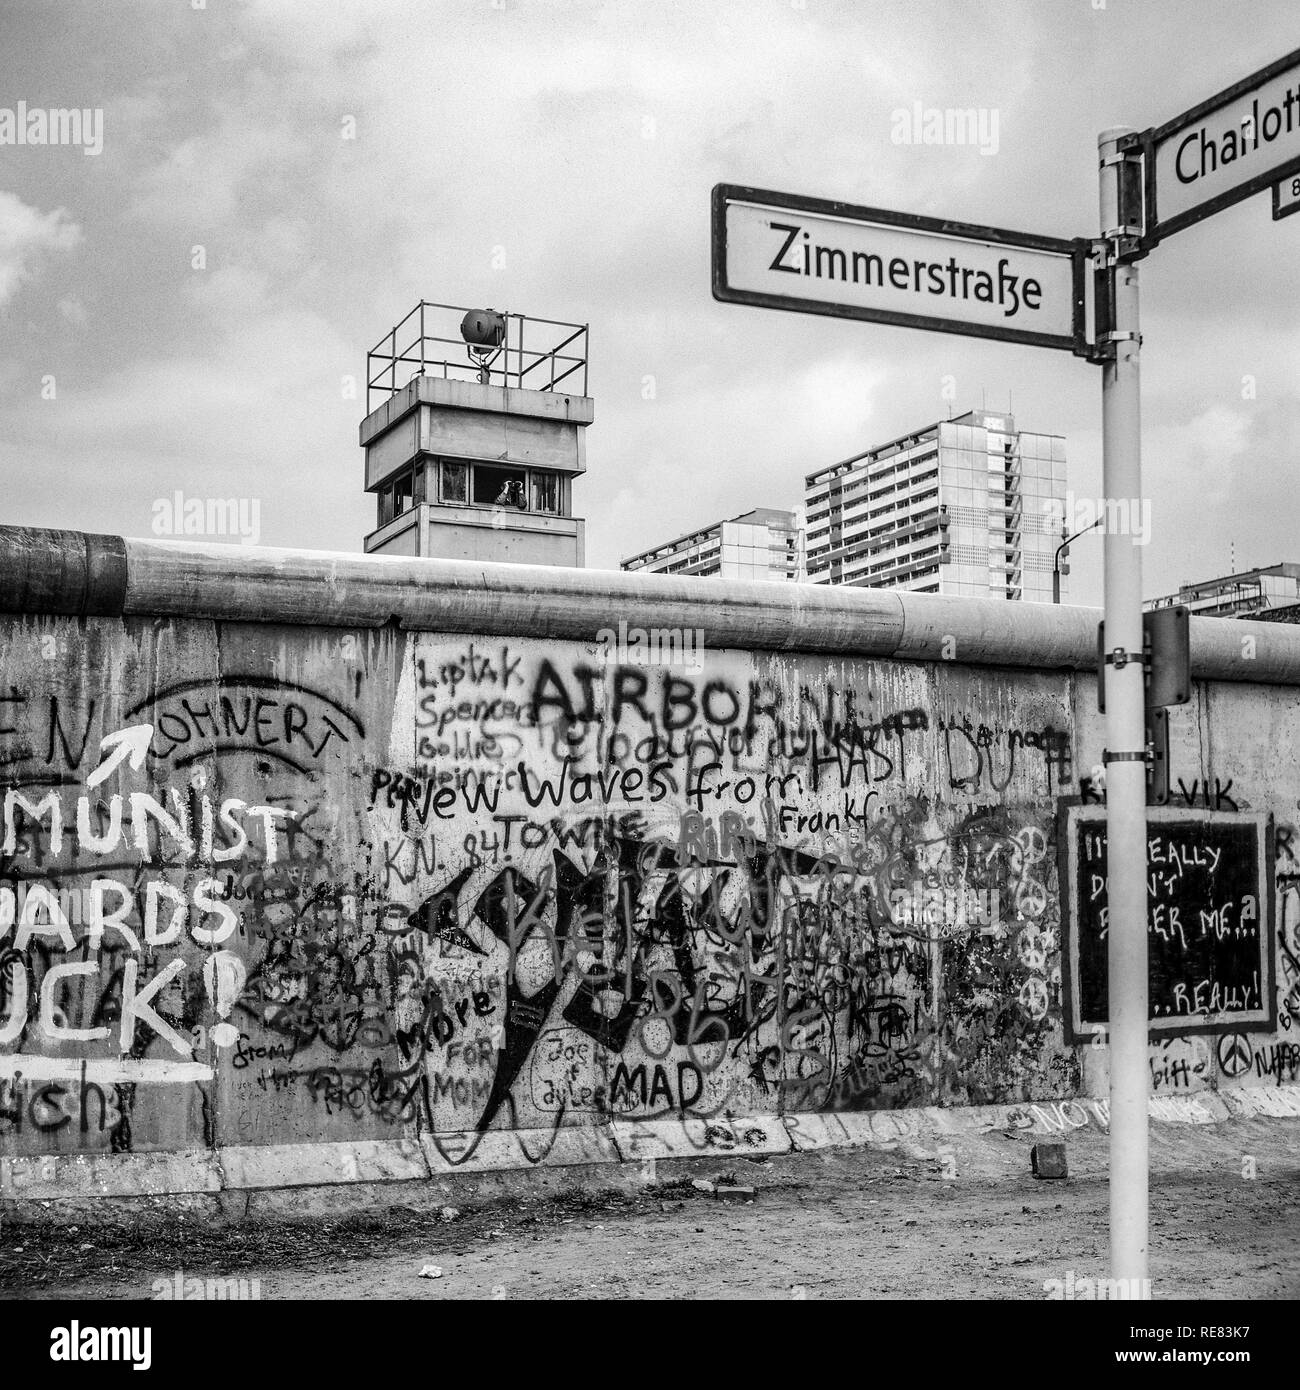 August 1986, graffitis on the Berlin Wall and East Berlin watchtower, Zimmerstrasse street sign, Kreuzberg, West Berlin side, Germany, Europe, - Stock Image